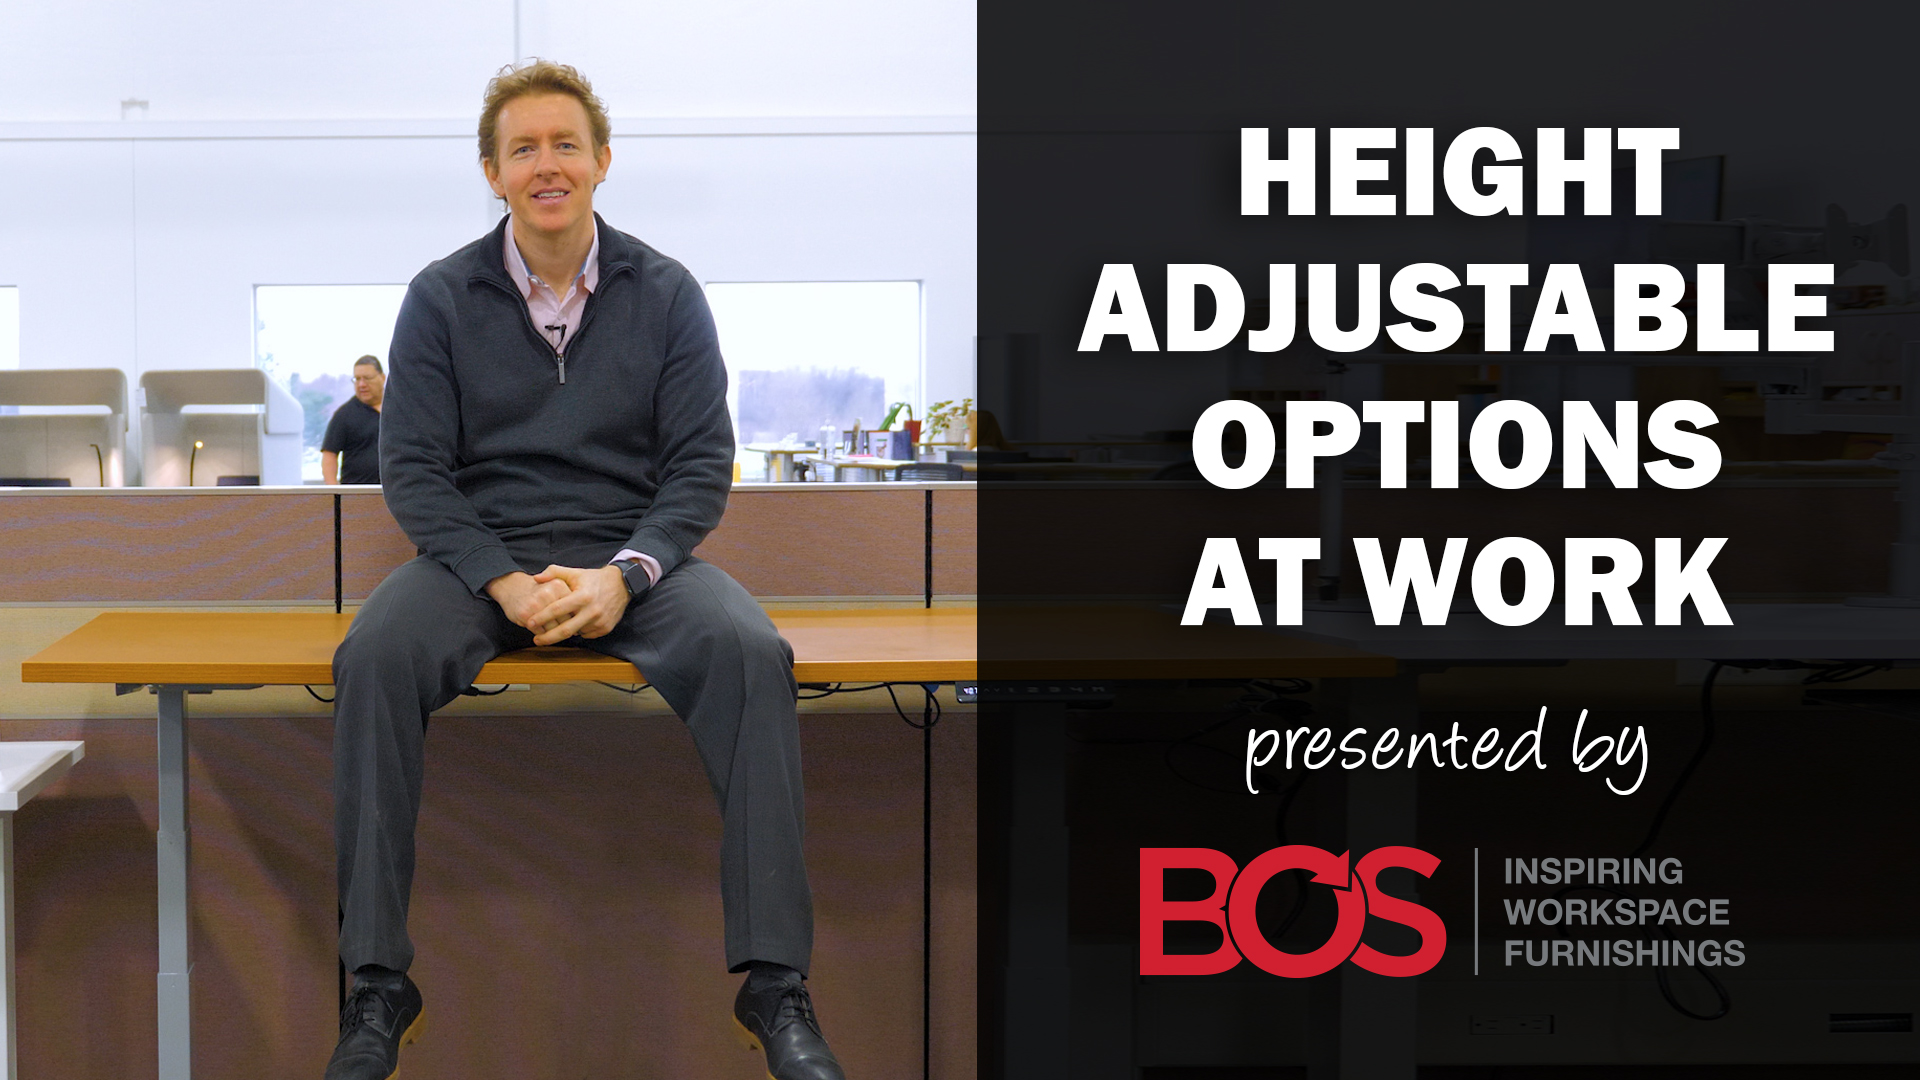 Height Adjustable Options at Work